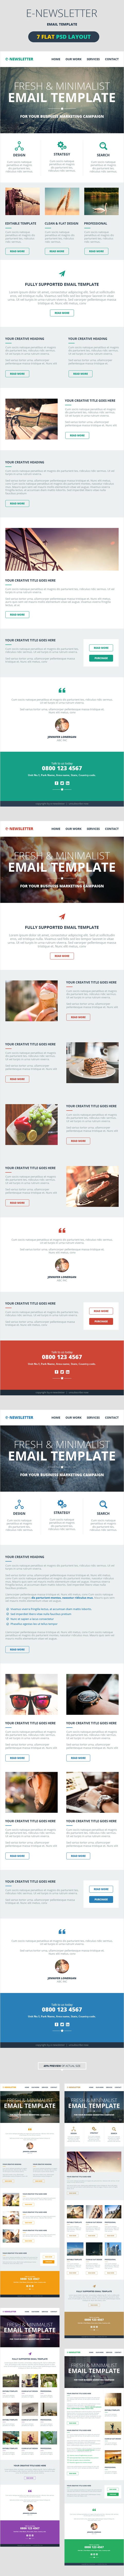 Multipurpose E-Newsletter Email Template by webduck webduck, via Behance